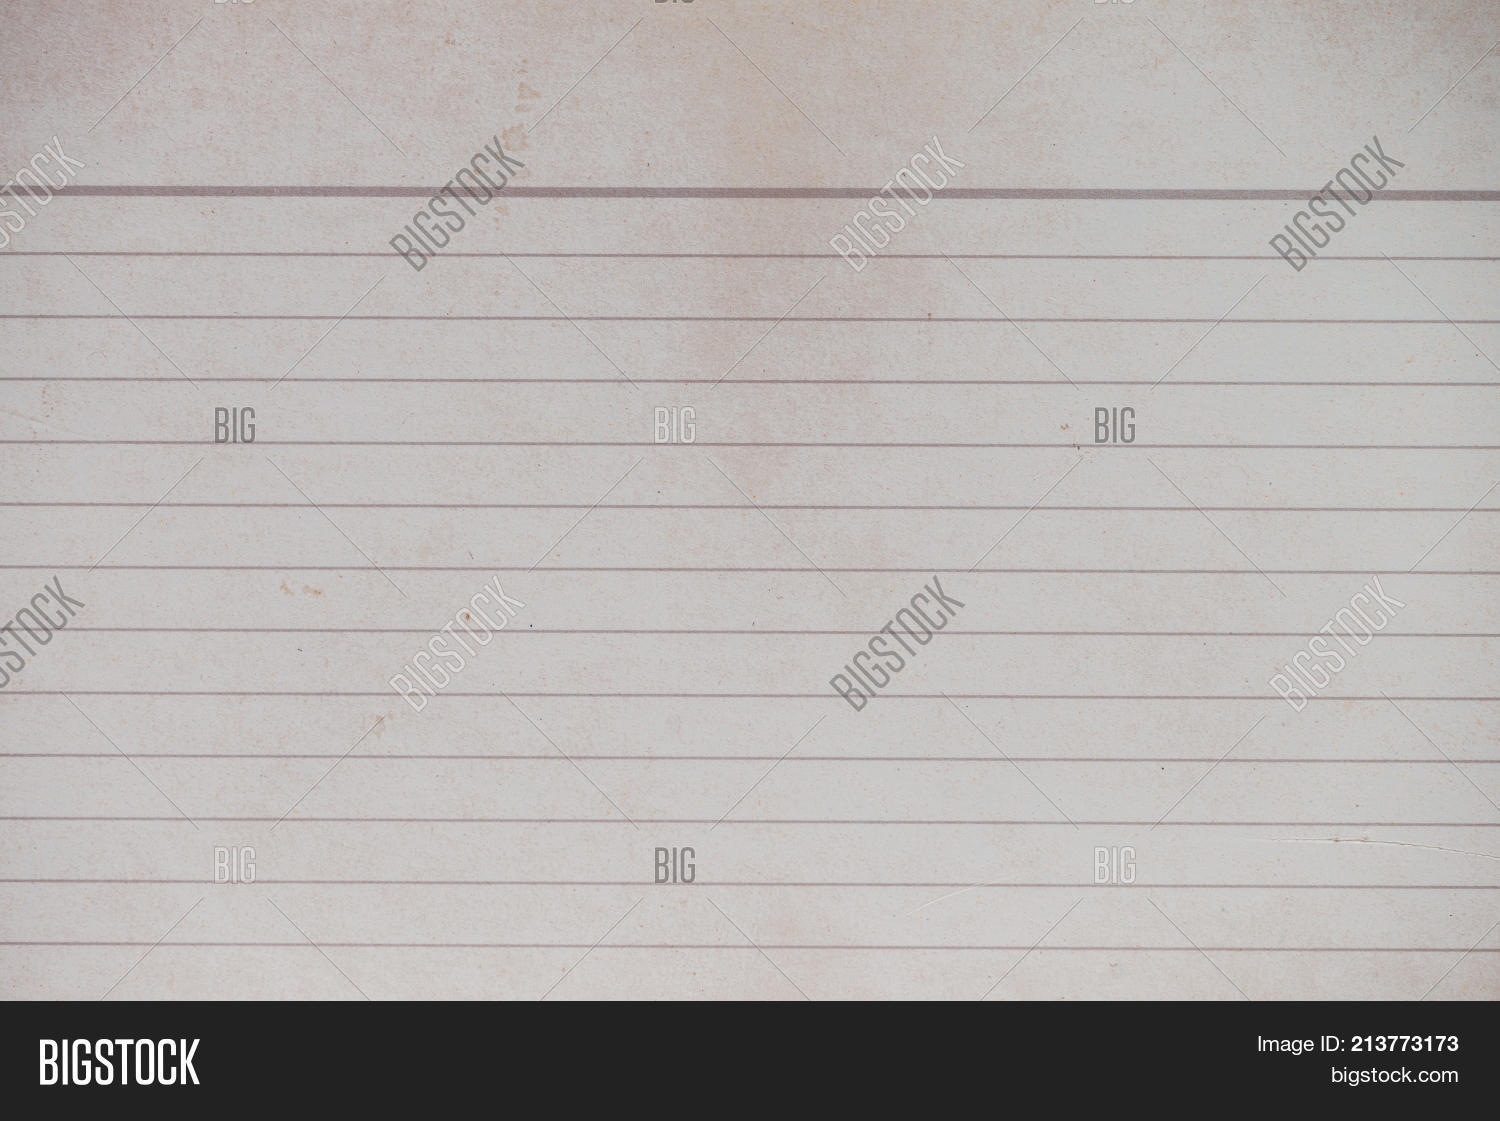 weathered lined paper image & photo (free trial) | bigstock